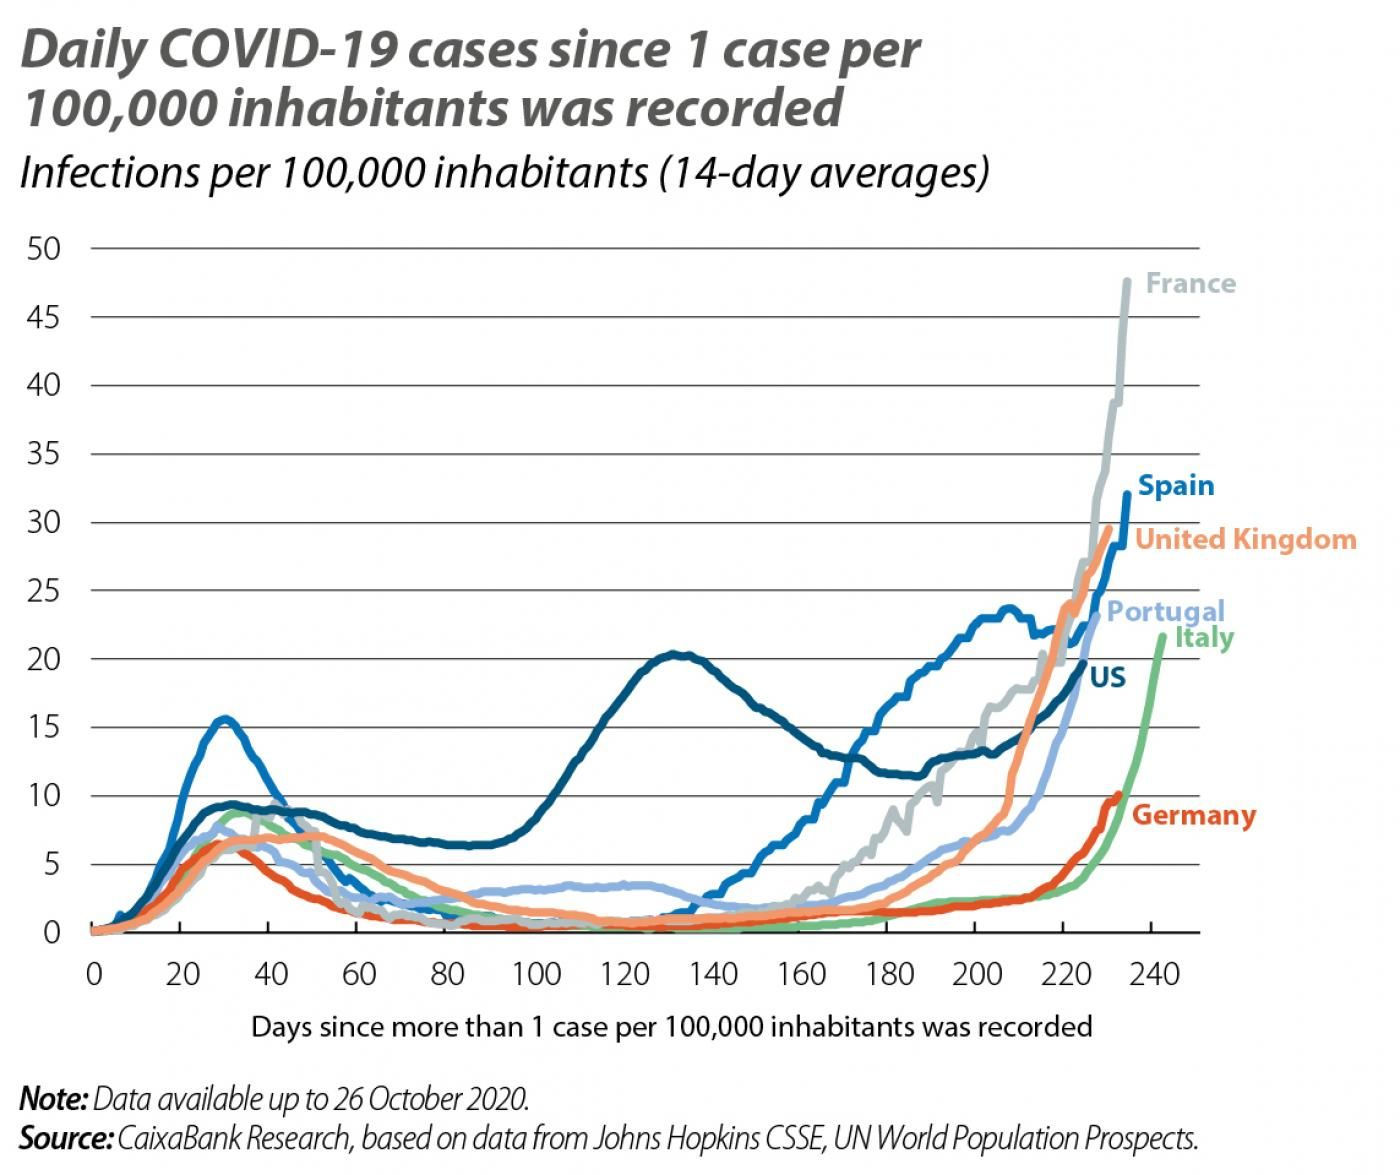 Daily COVID-19 cases since 1 case per 100,000 inhabitants was recorded